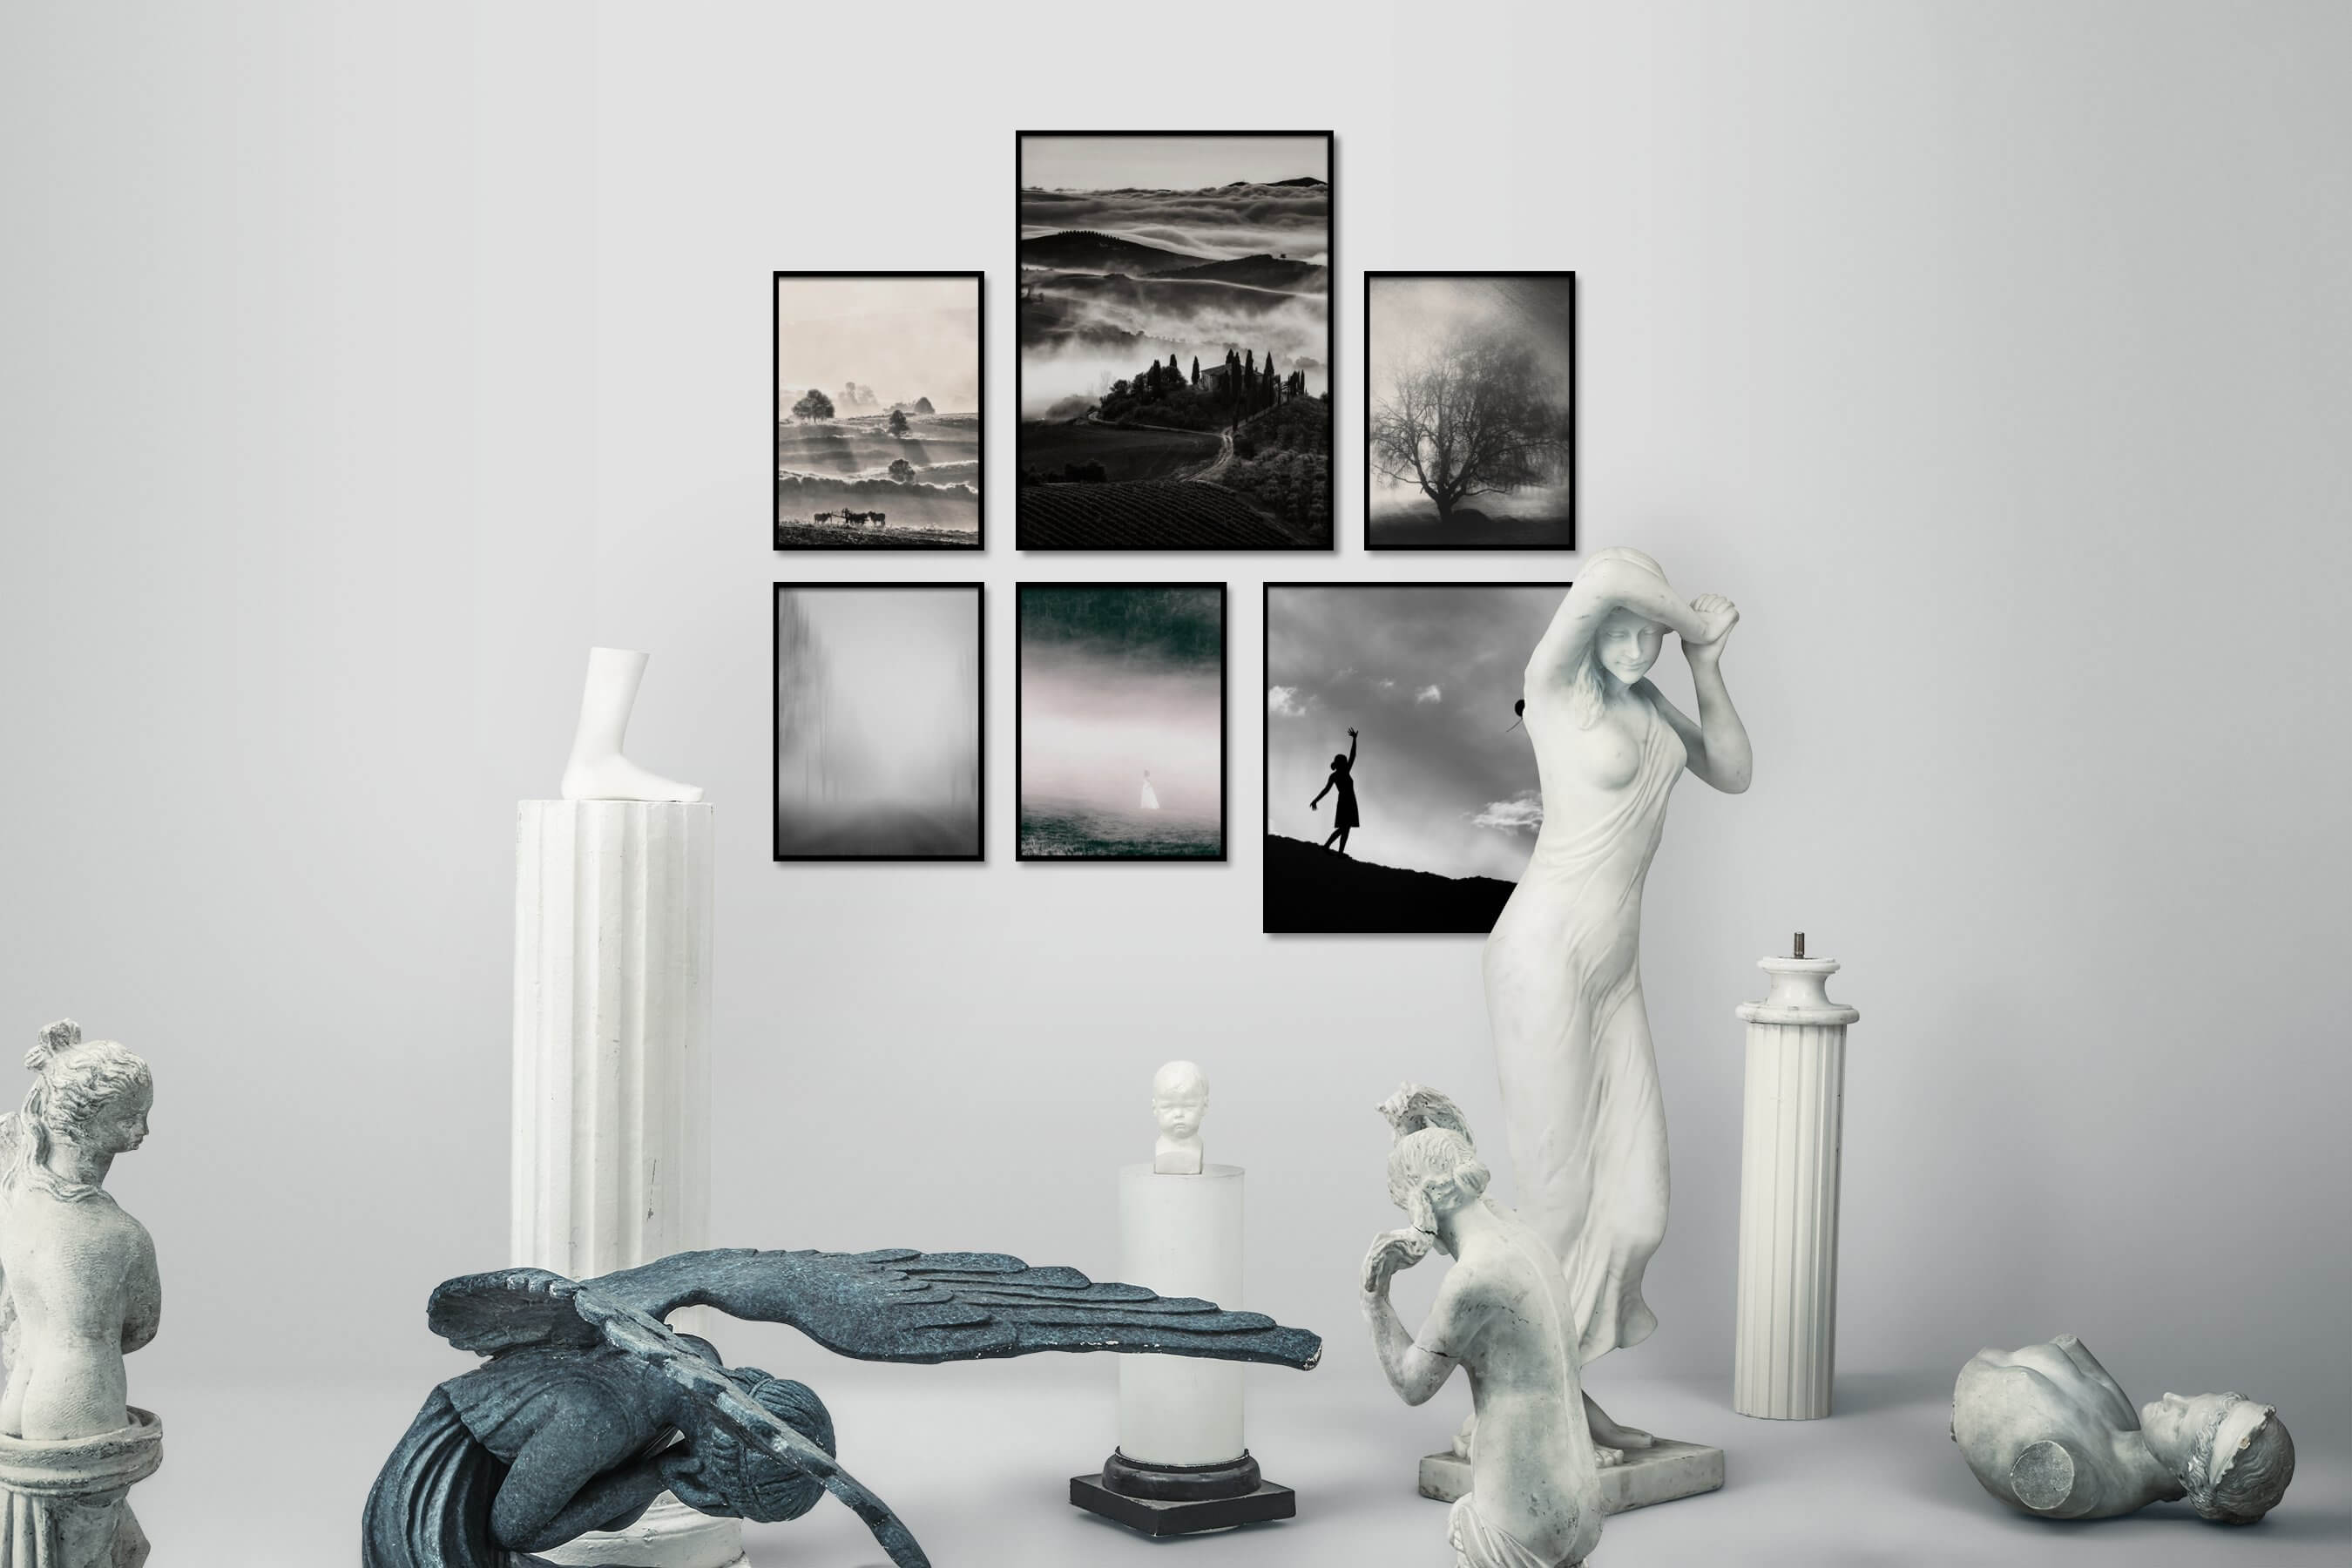 Gallery wall idea with six framed pictures arranged on a wall depicting Animals, Country Life, Black & White, For the Minimalist, Mindfulness, and Nature